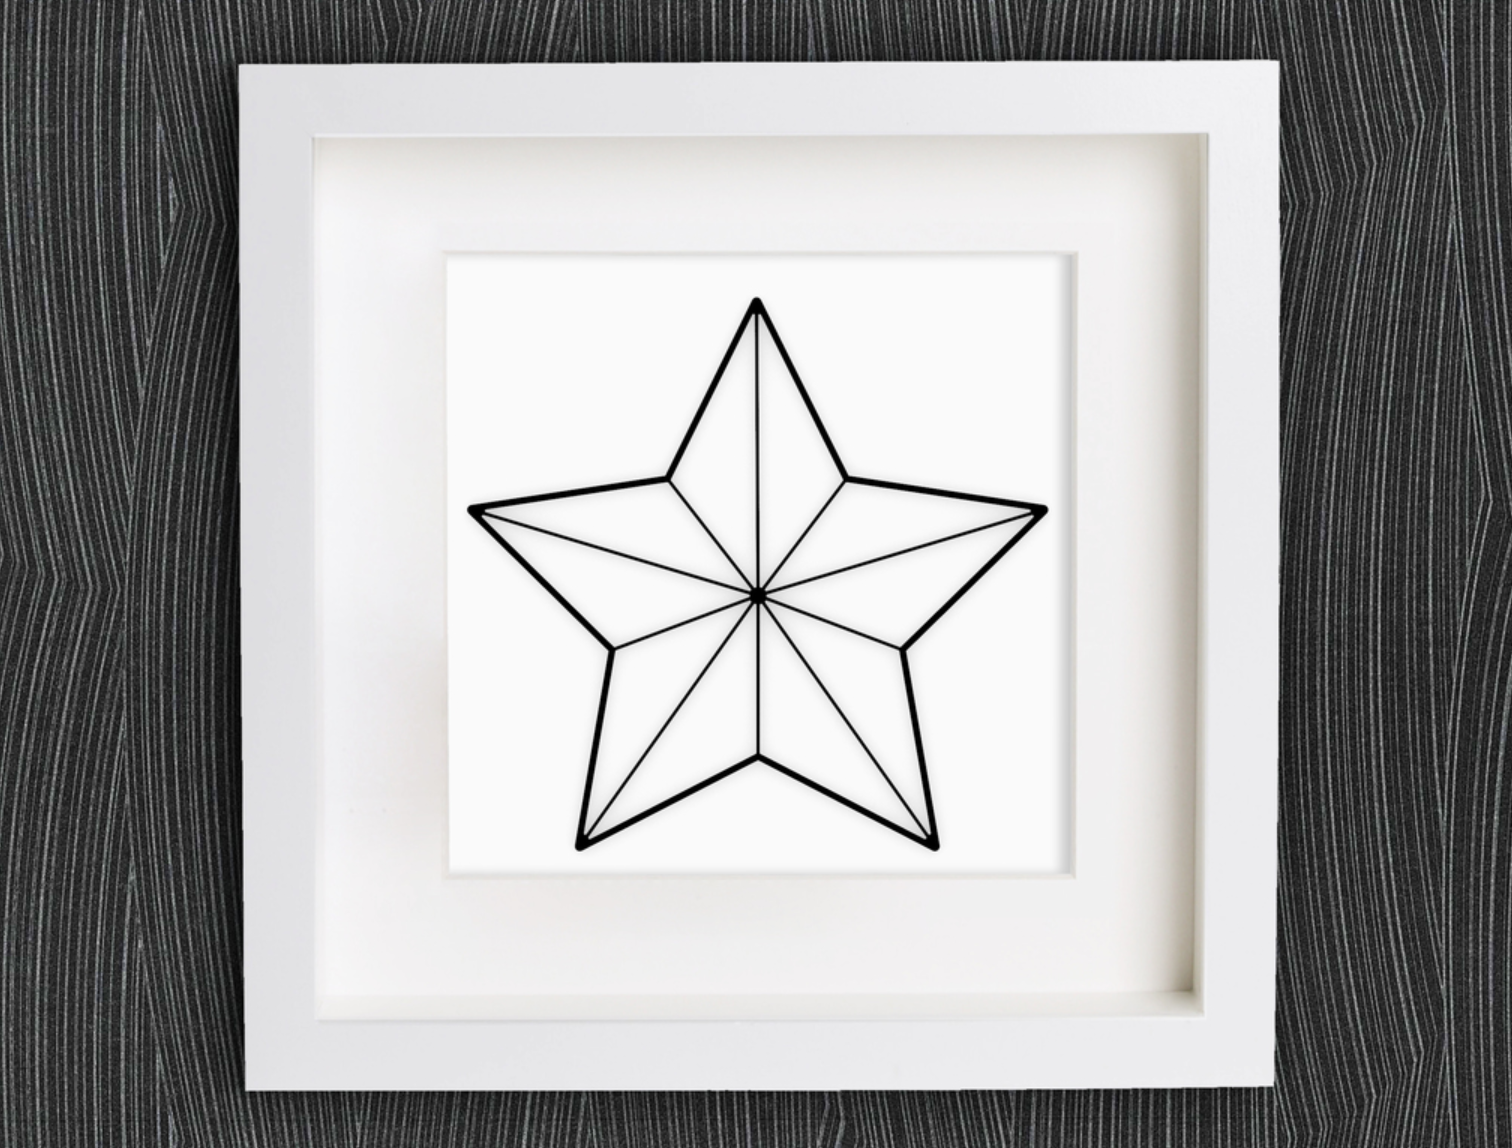 Capture d'écran 2017-11-13 à 11.58.29.png Download free STL file Customizable Origami Christmas Star No. 1 • Template to 3D print, MightyNozzle